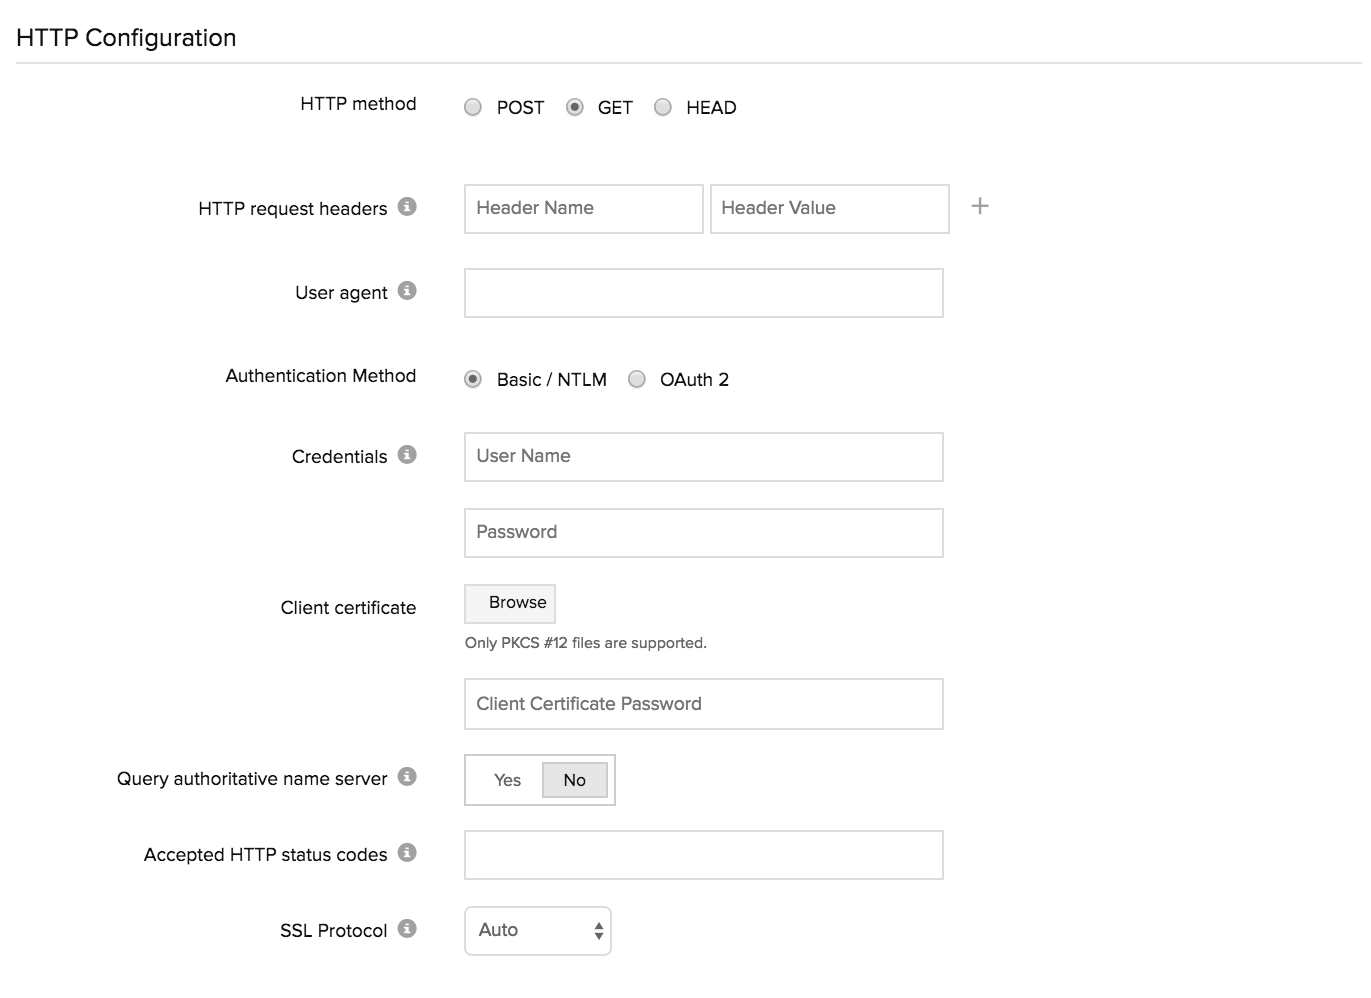 Http Methods and Form Submission